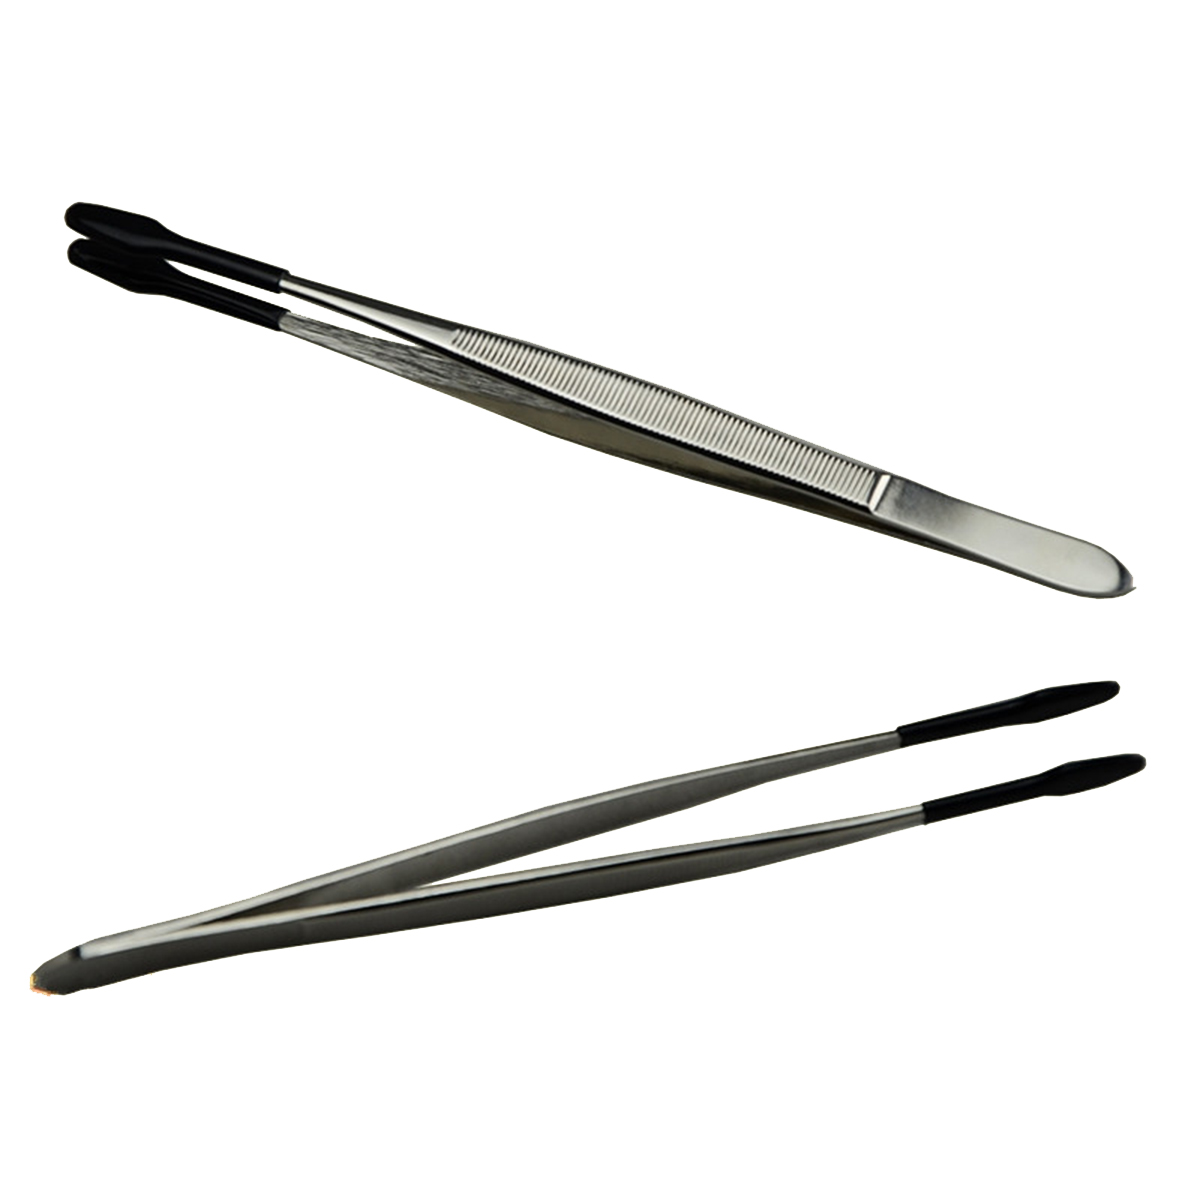 Stainless Steel Tweezer For Jewelry/Coin/Stamp Collection Handling Tools Collectibles Industrial Tweezers Hand Tools 15cm